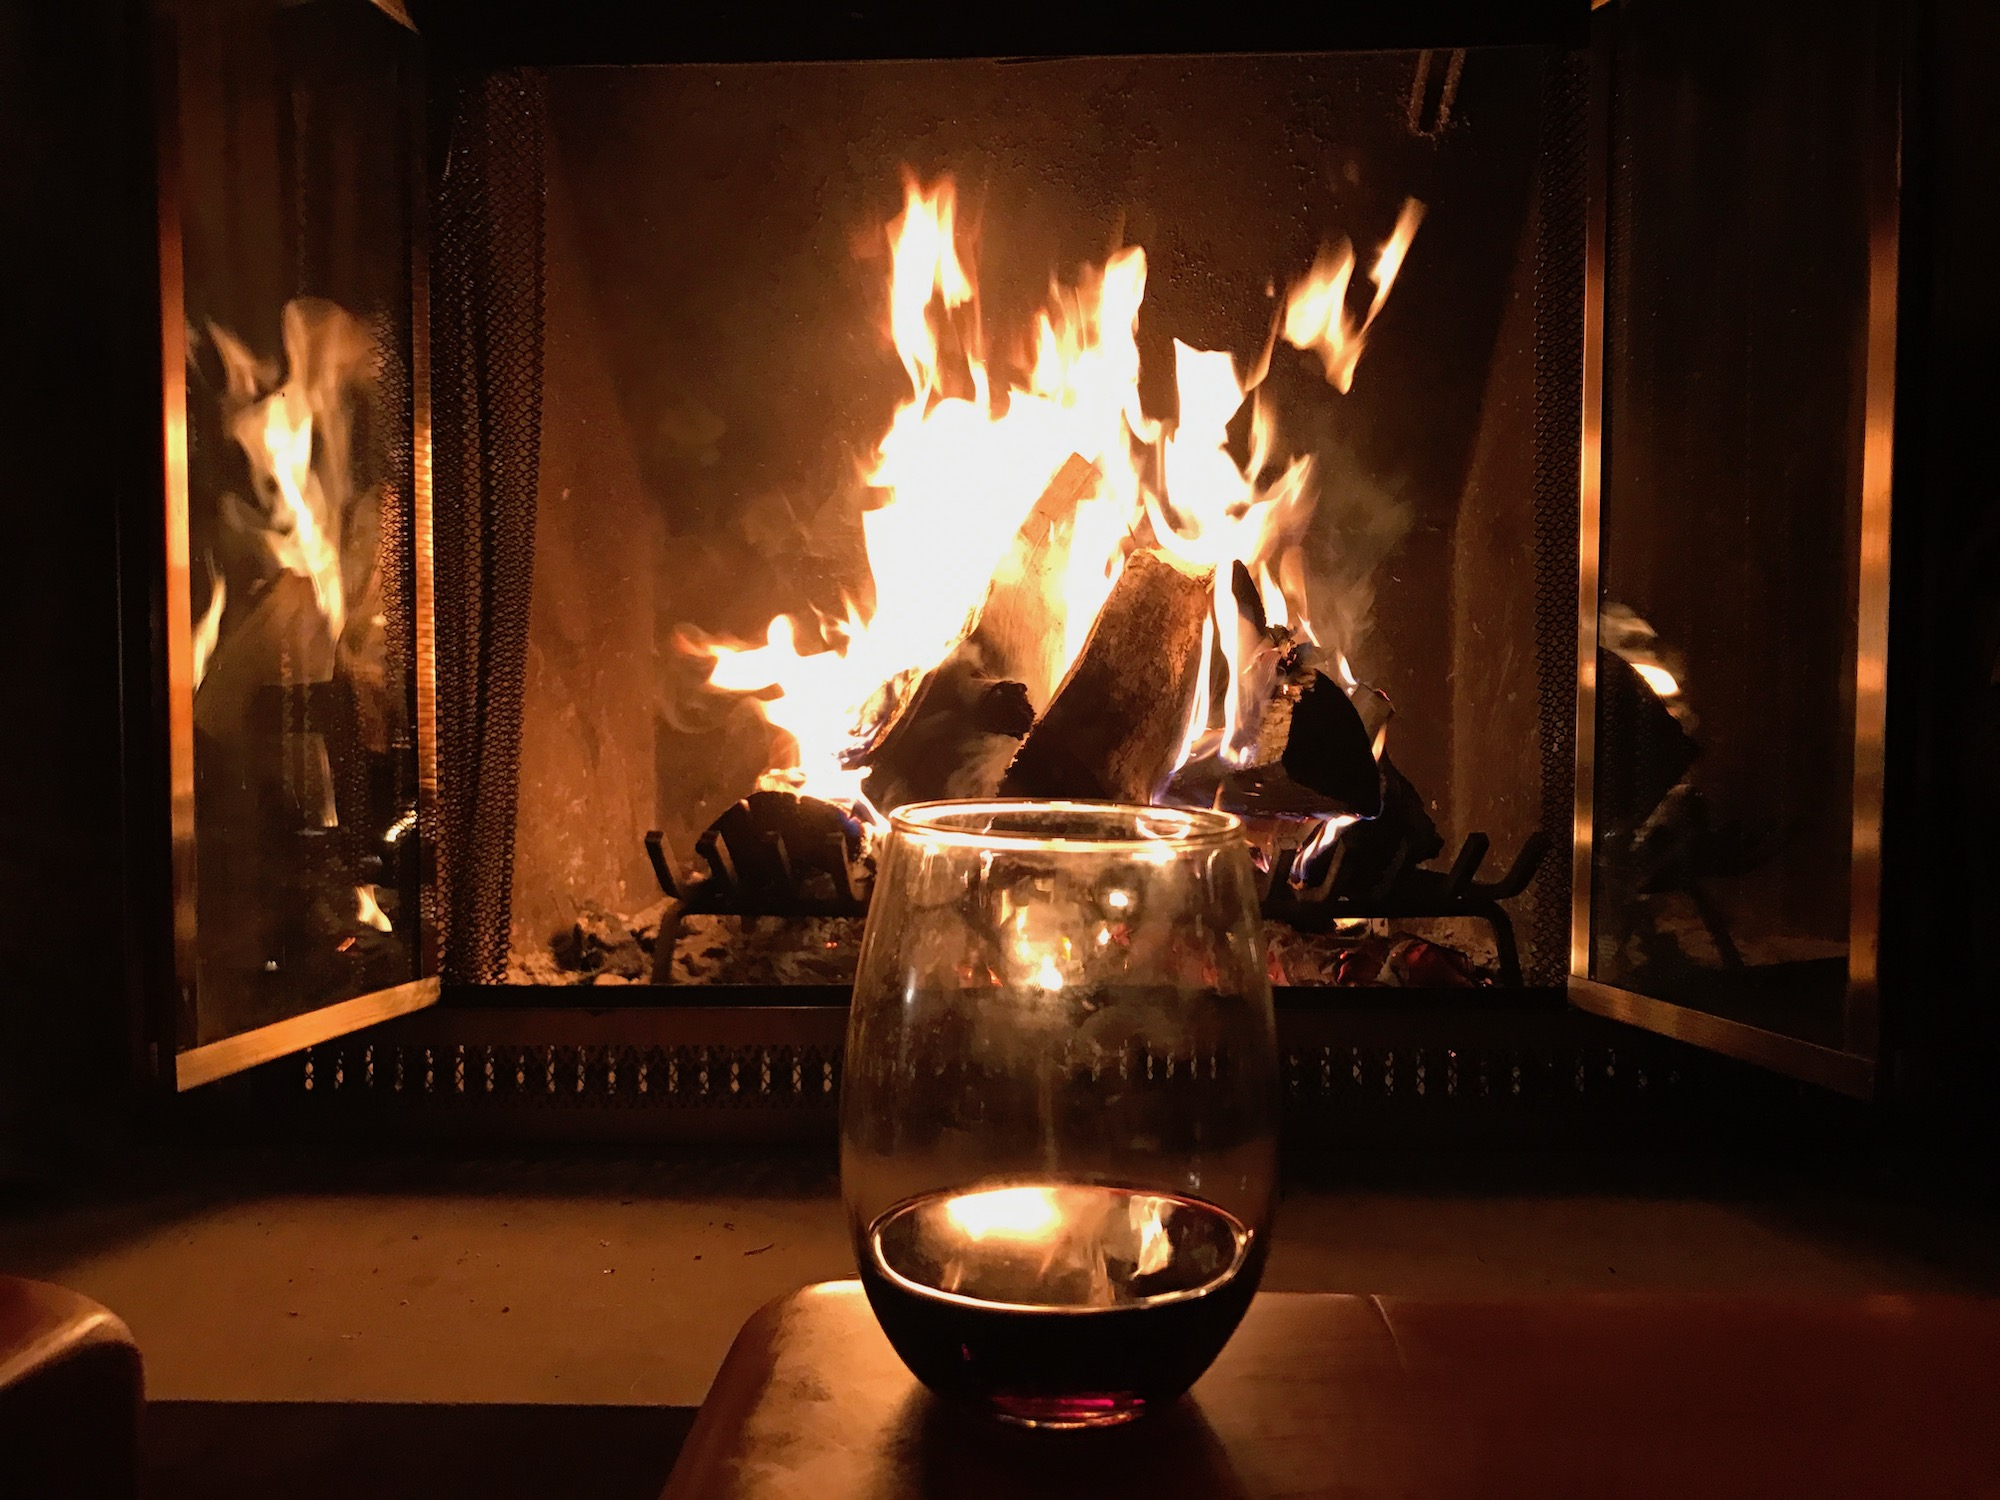 Fire at the ski chalet with glass of wine.jpeg